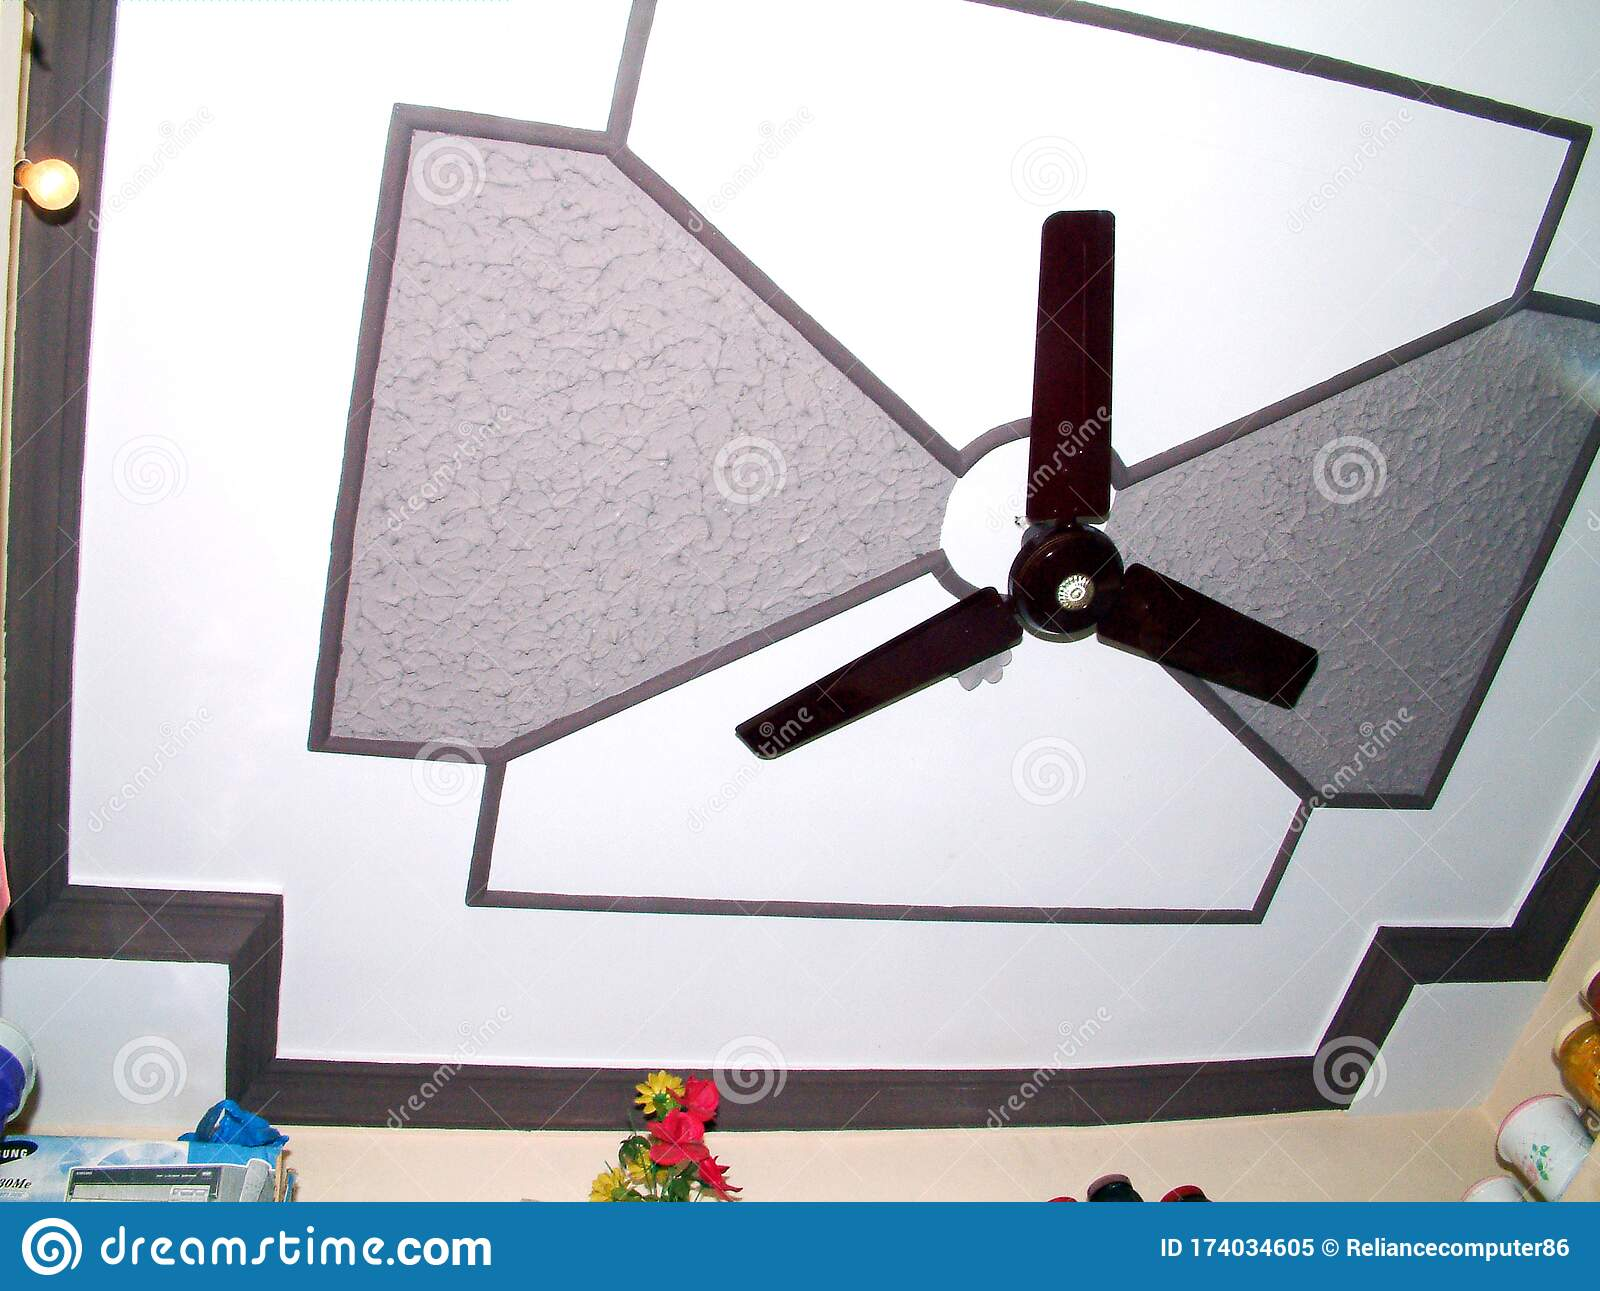 Search Results Images For Pop Ceiling Design Some Creative Interior Design Ideas Stock Image Image Of Living Hall 174034605